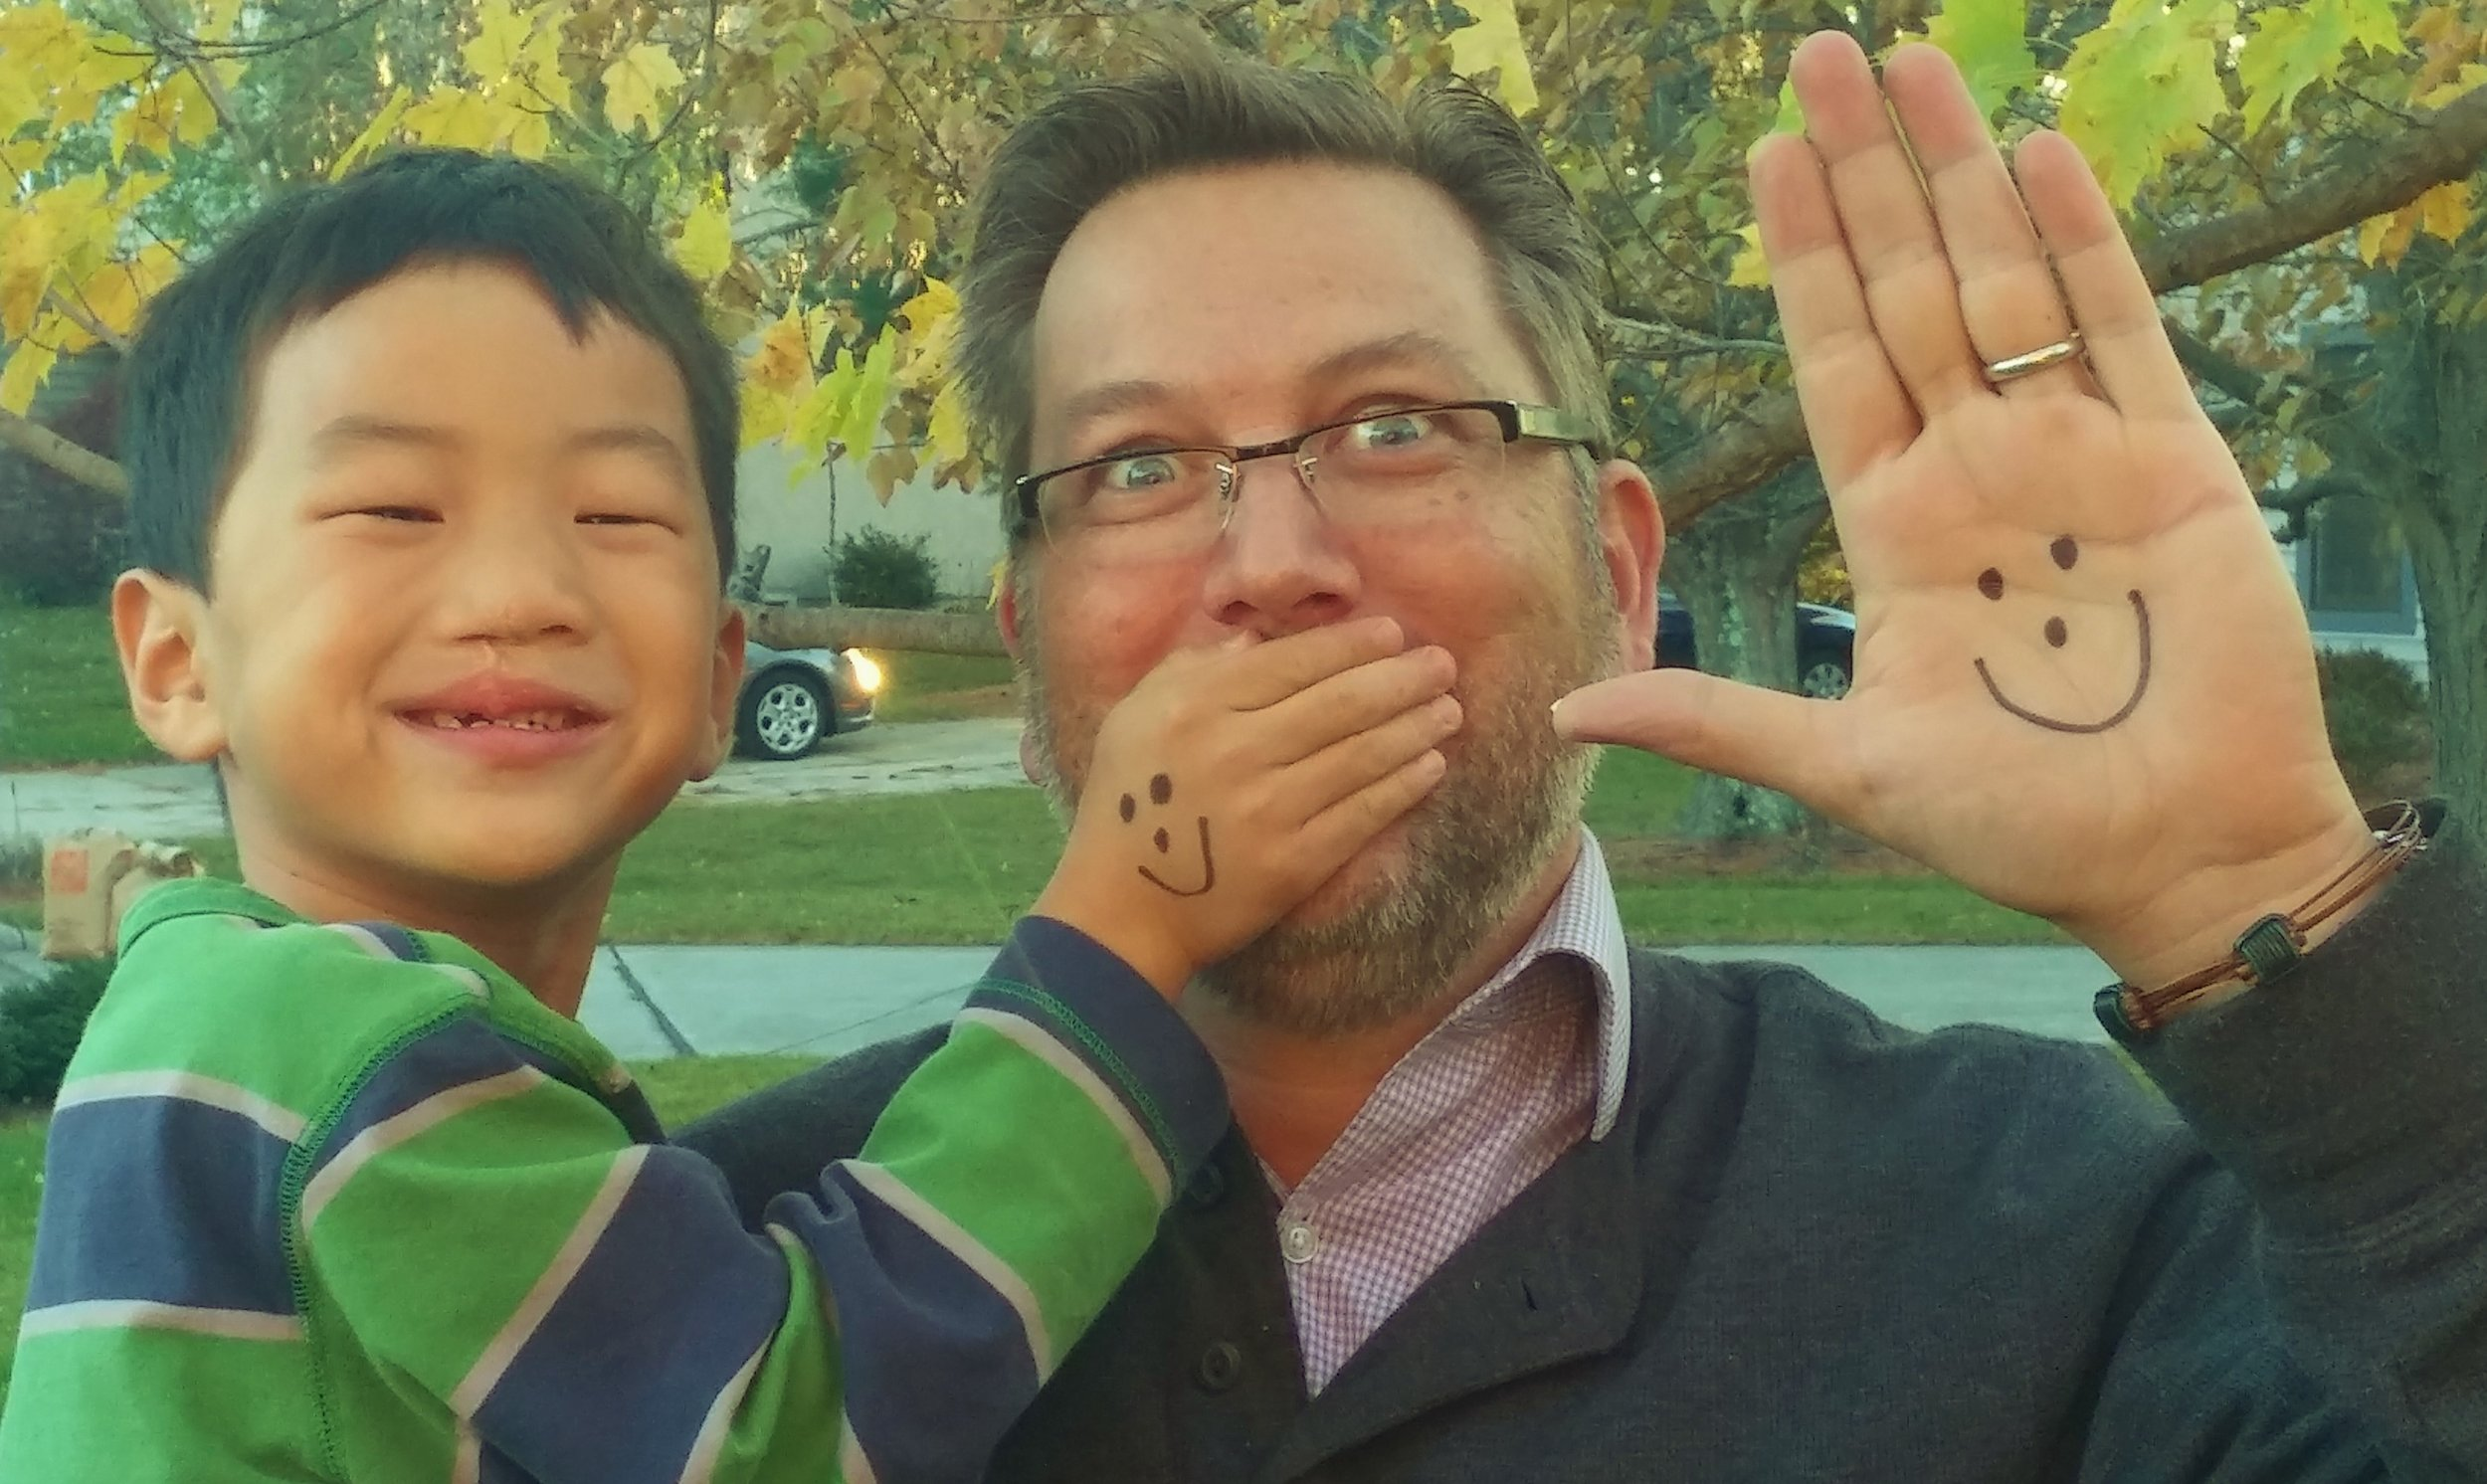 Had I followed my plan, I would've missed out on being Solomon's dad. We're better together, and we're holding up our smiley faces in recognition of World Adoption Day (Nov. 15).